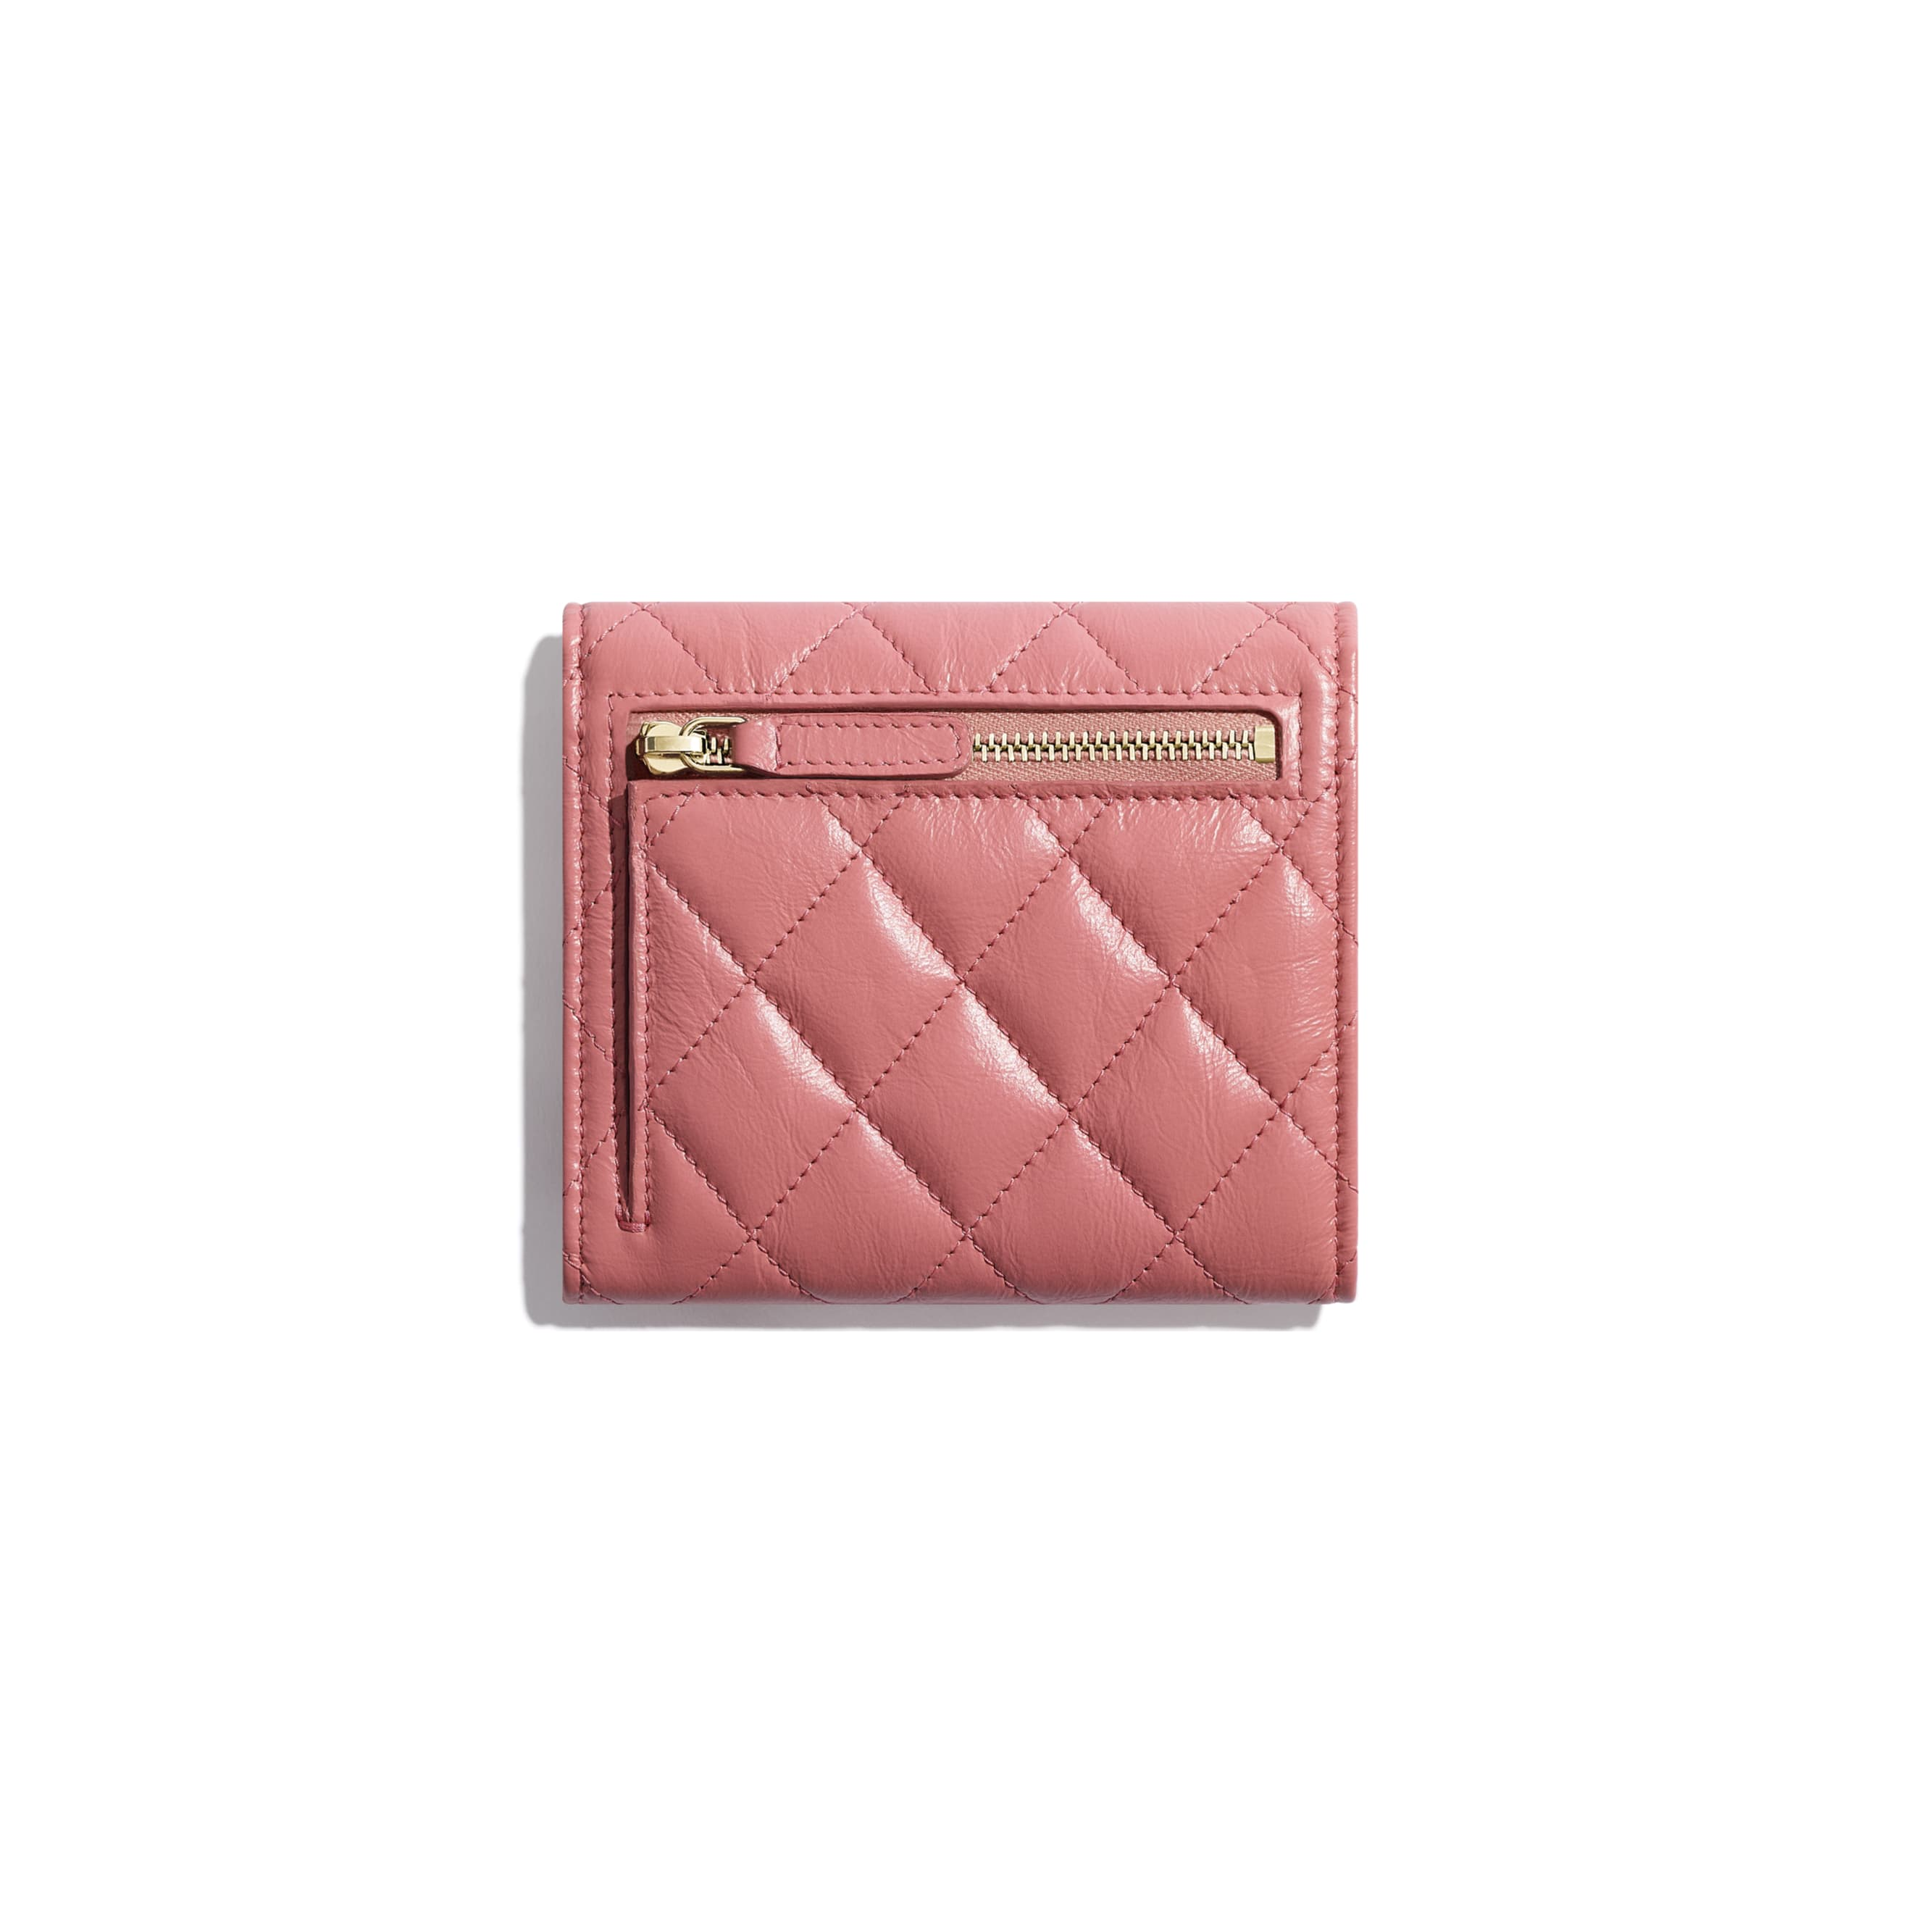 2.55 Small Flap Wallet - Pink - Aged Calfskin & Gold-Tone Metal - CHANEL - Alternative view - see standard sized version